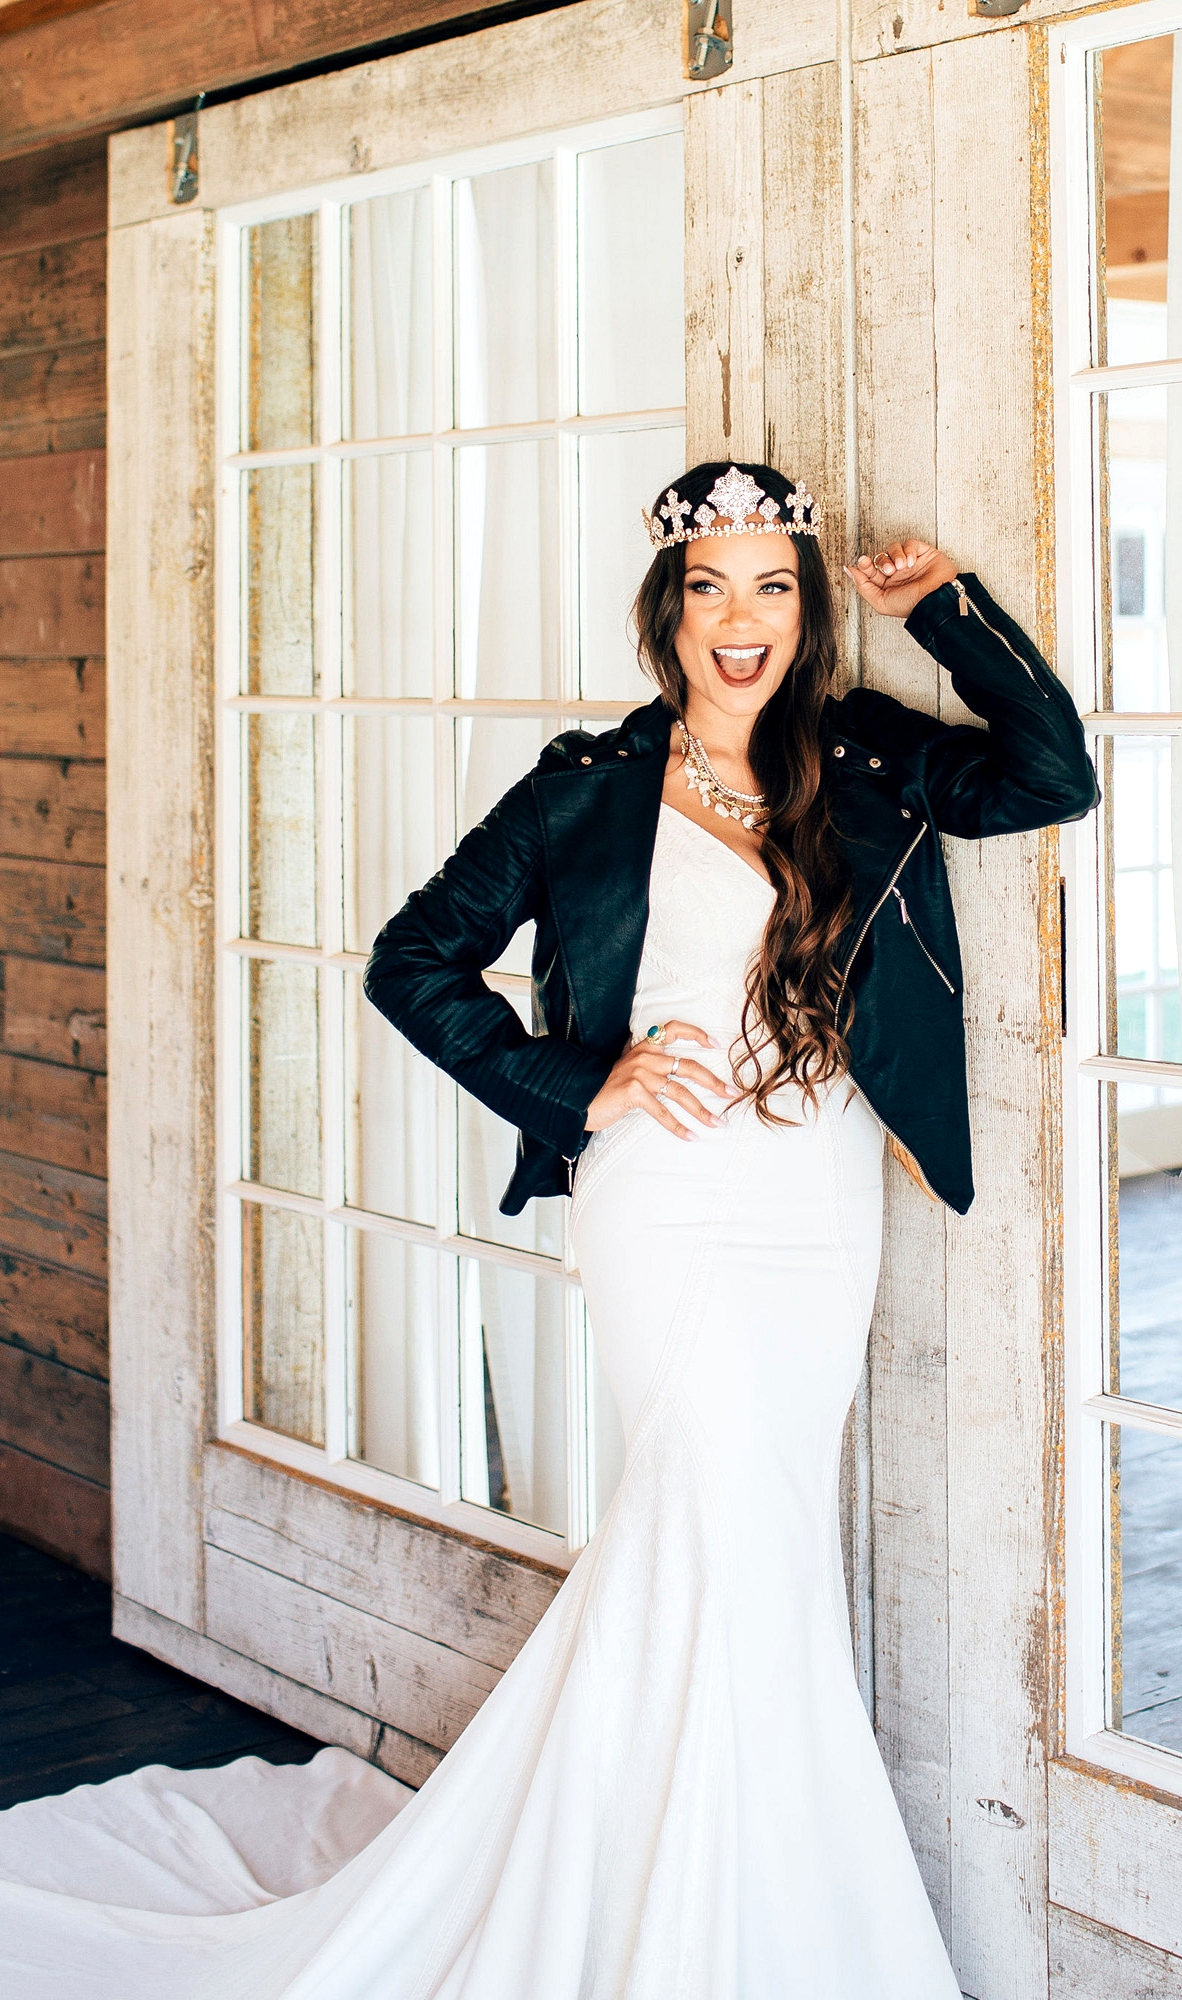 Lovers Society x Green Wedding Shoes Wyatt Wedding Dress with a leather jacket and crown